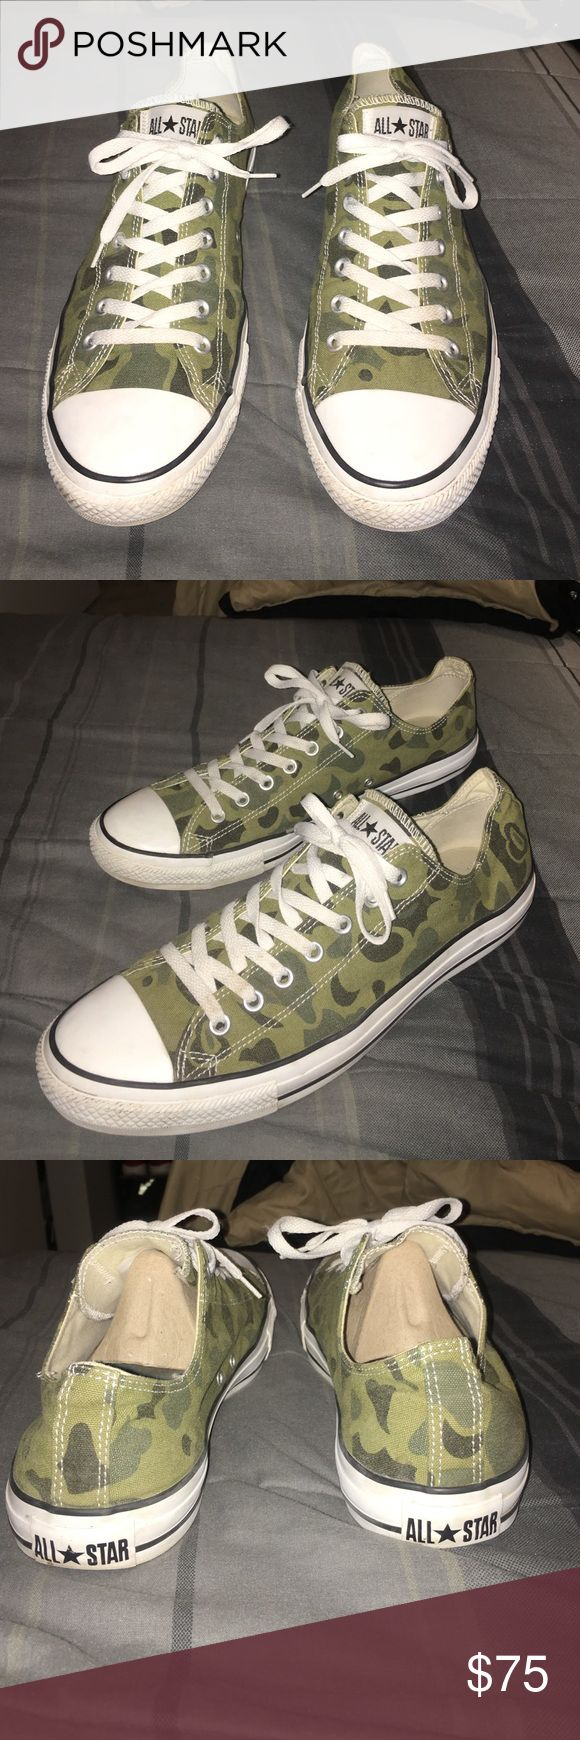 Camo converse Worn 3 times, basically brand new. Willing to trade so shoot me offers. Converse Shoes Sneakers